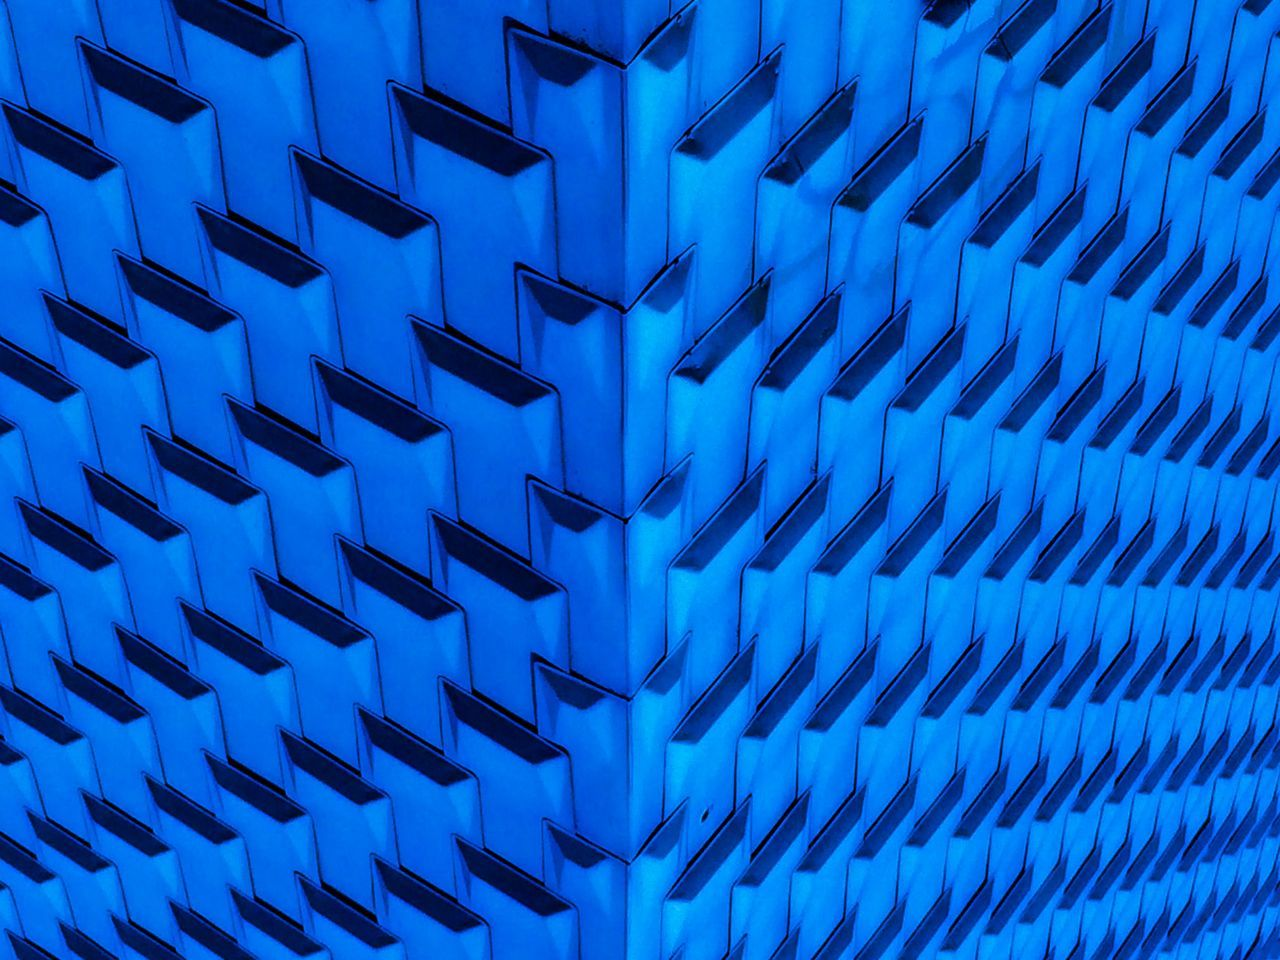 Cobalt Blue By Motorola Sunday_flip EyeEm Best Edits Urban Geometry IPhoneography Pattern Blue waves...